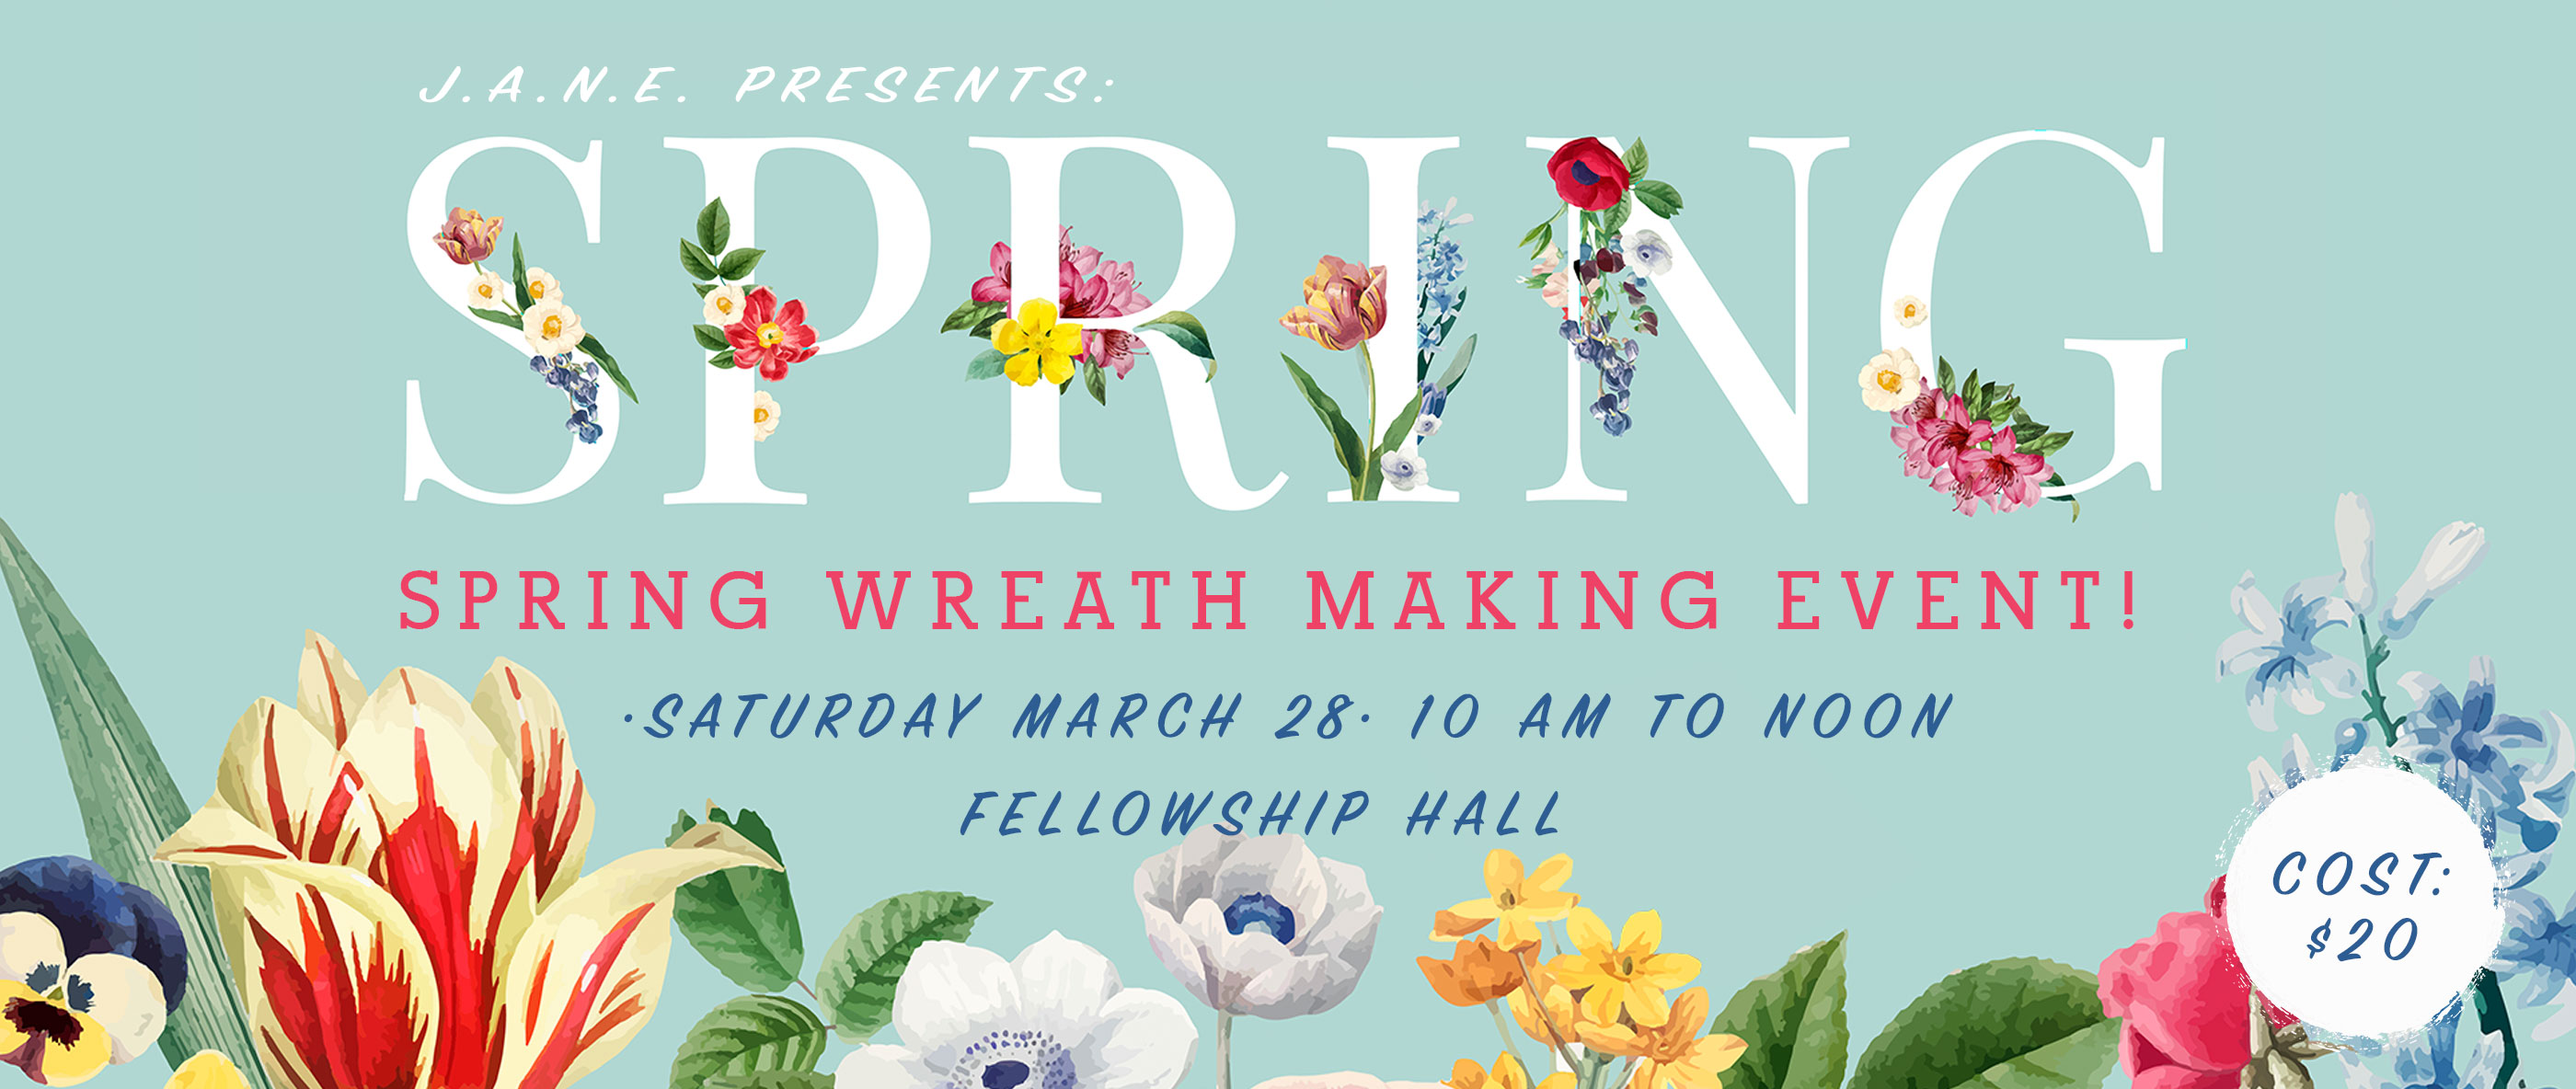 Spring wreath_making_event_header2020